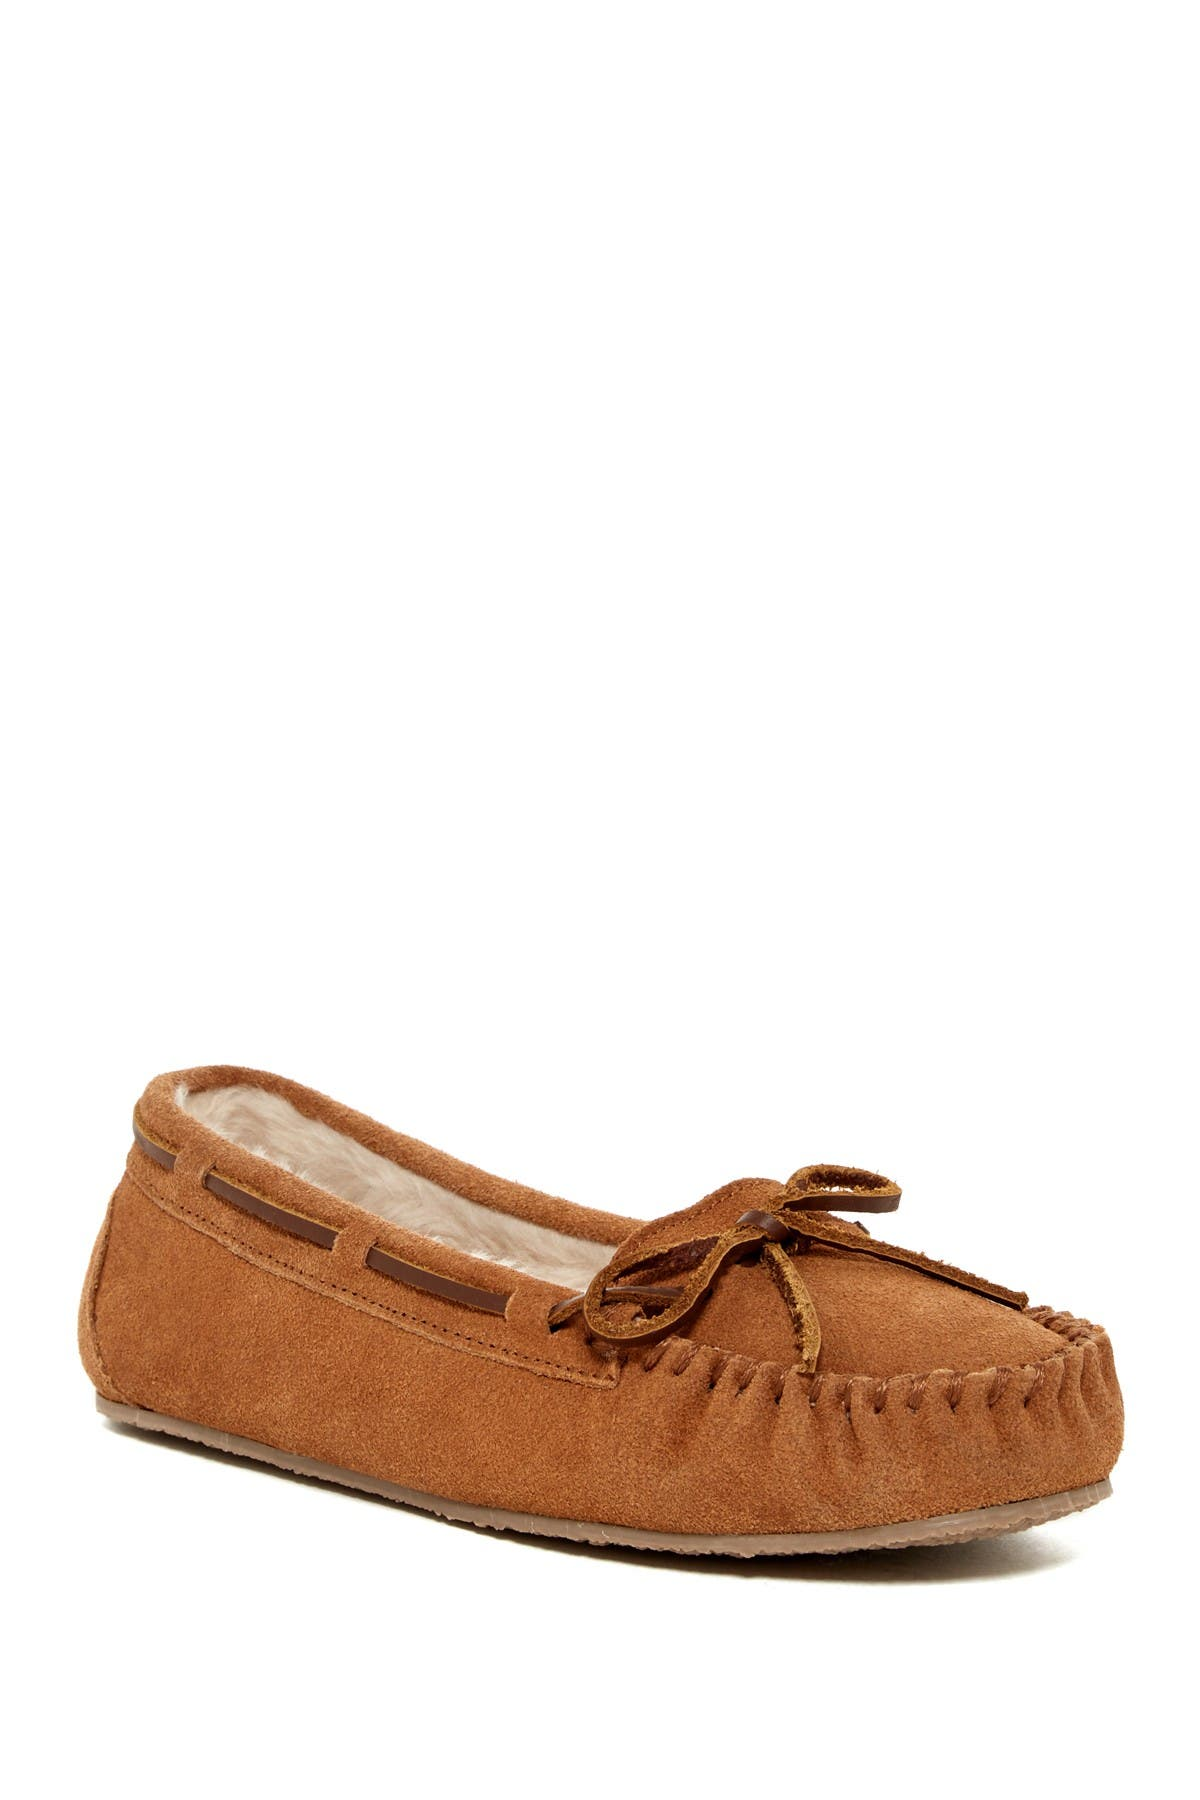 Image of Minnetonka Junior Trapper Faux Fur Lined Moccasin Slipper